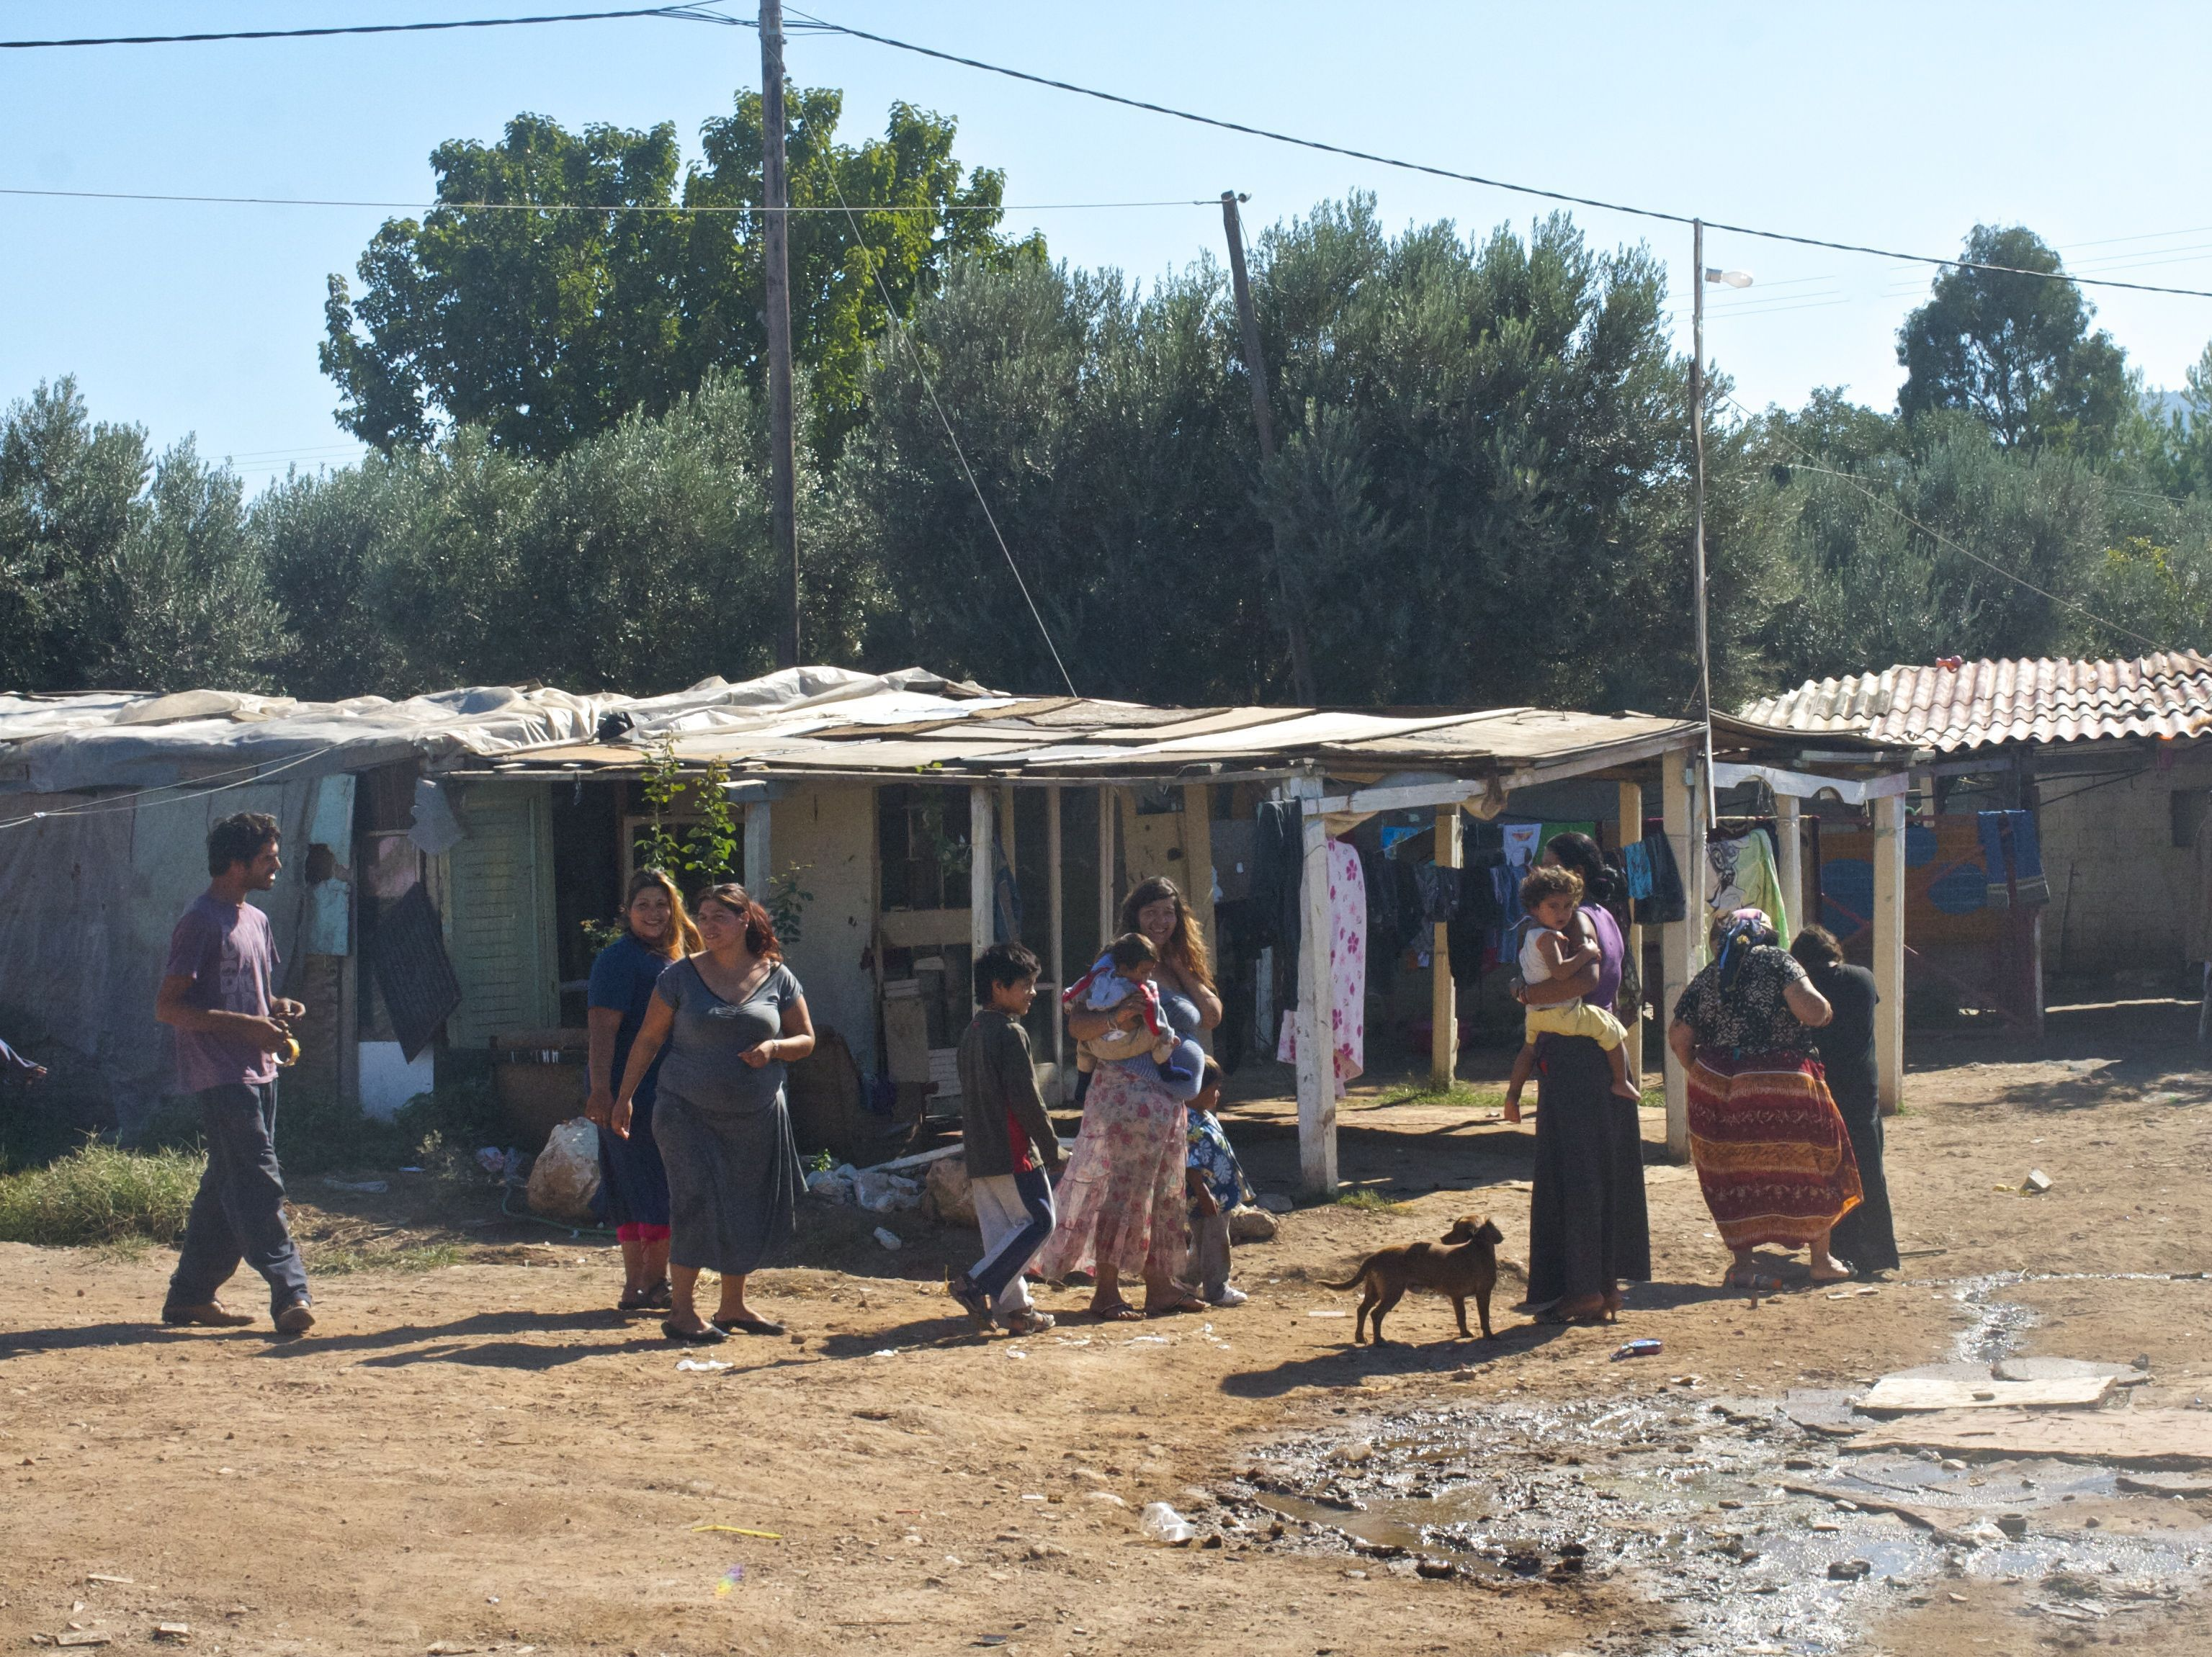 The poorest families in the Roma camp build shacks from plywood and scrap metal salvaged from the trash.